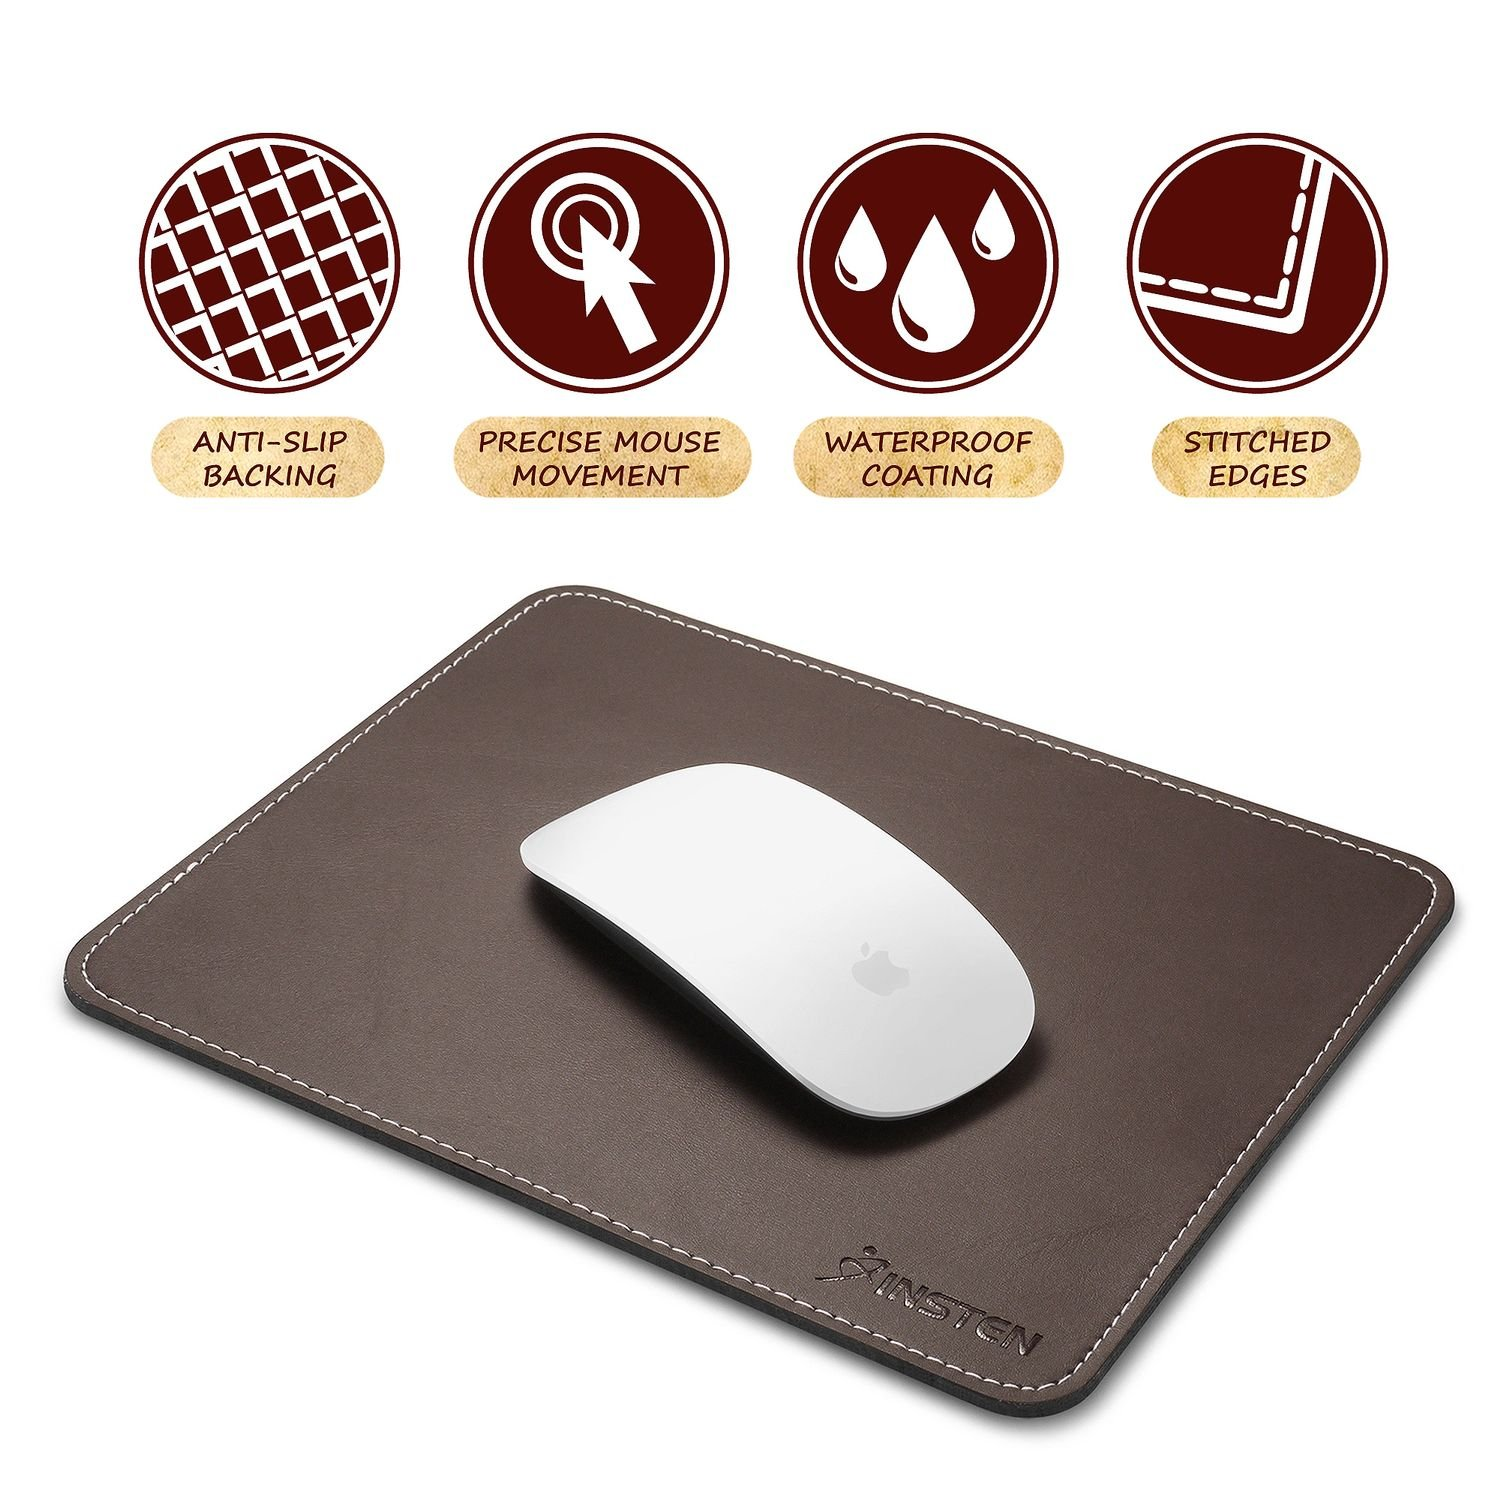 Insten Premium Leather Mouse Pad with Waterproof Coating, Non Slip & Elegant Stitched Edges, Brown eForCity 2208904